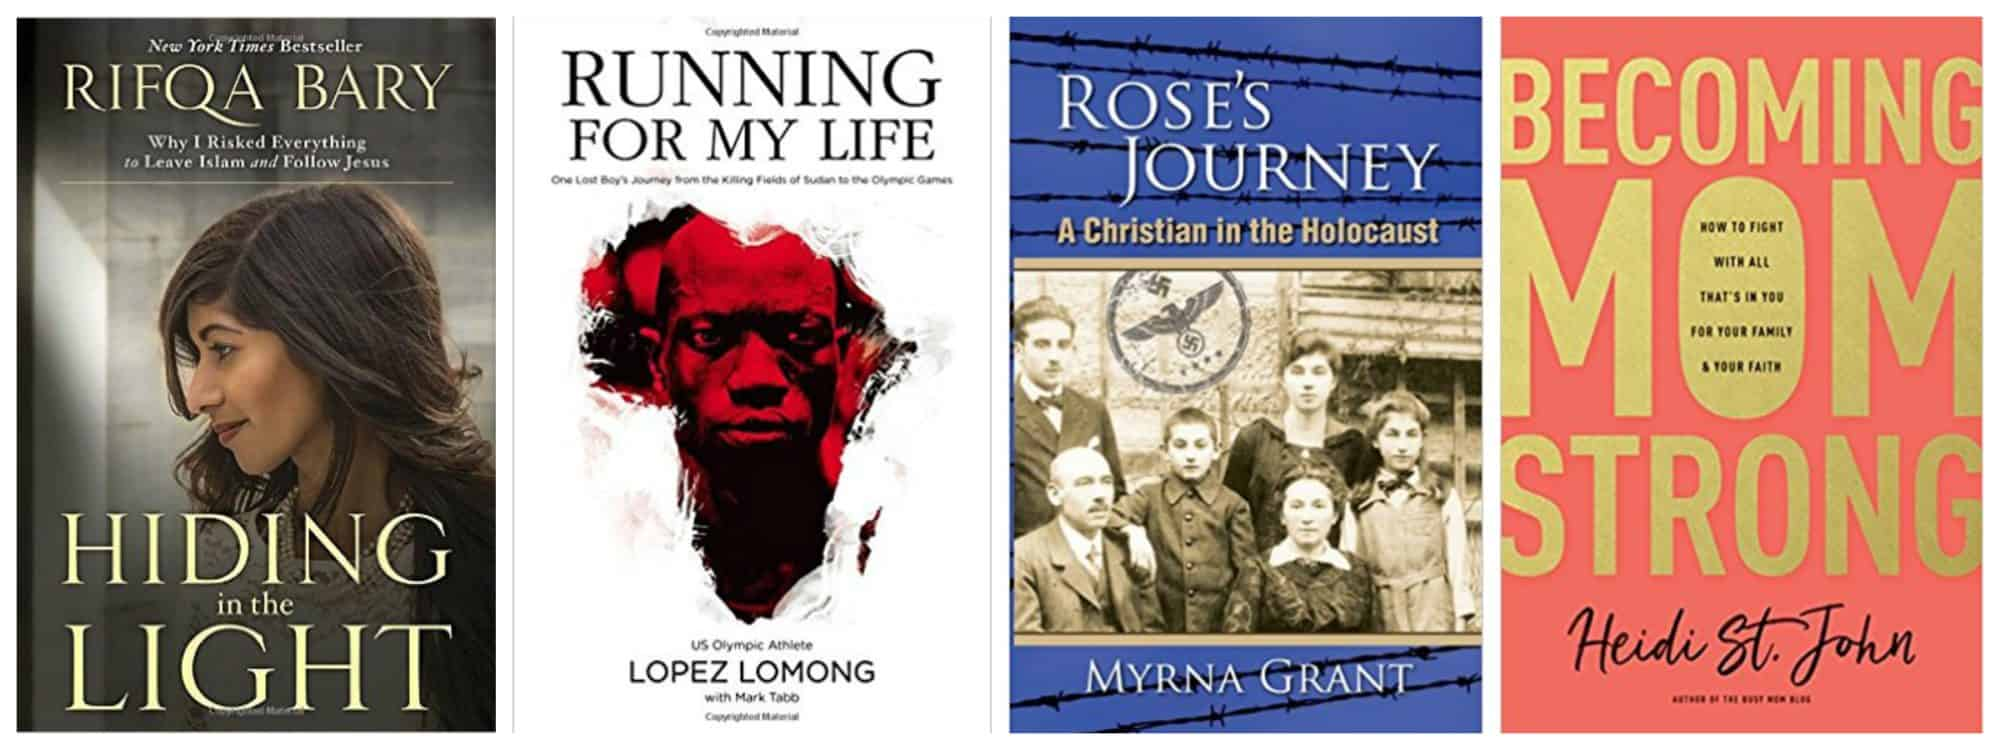 2018 Reading List: New and {Worthy To Be Revisited} Older Books. 4 book covers:Becoming MomStrong by Heidi St. John; Running for My Life, Killing Fields of Sudan by Lopez Lumong; Hiding In the Light by Rifqa Bary; Rose's Journey by Myrna Grant.